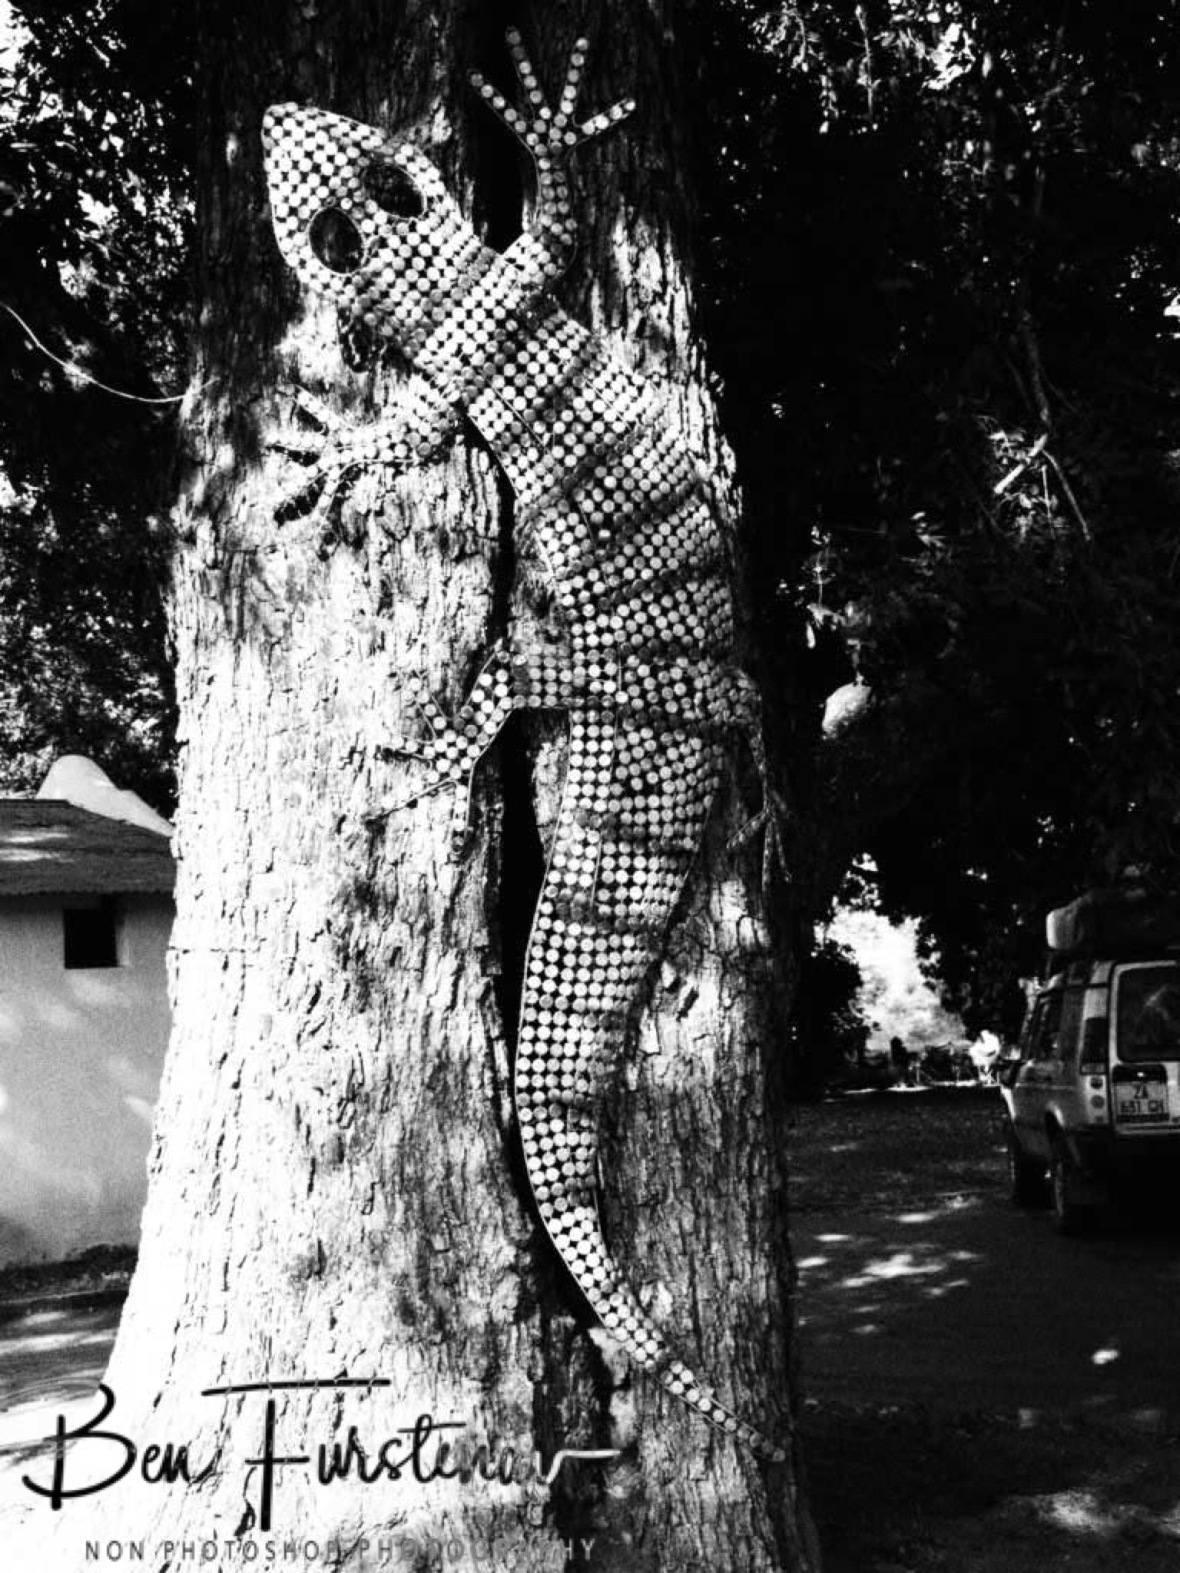 Oversized Gecko art at Thorn Tree Lodge, Livingstone, Zambia